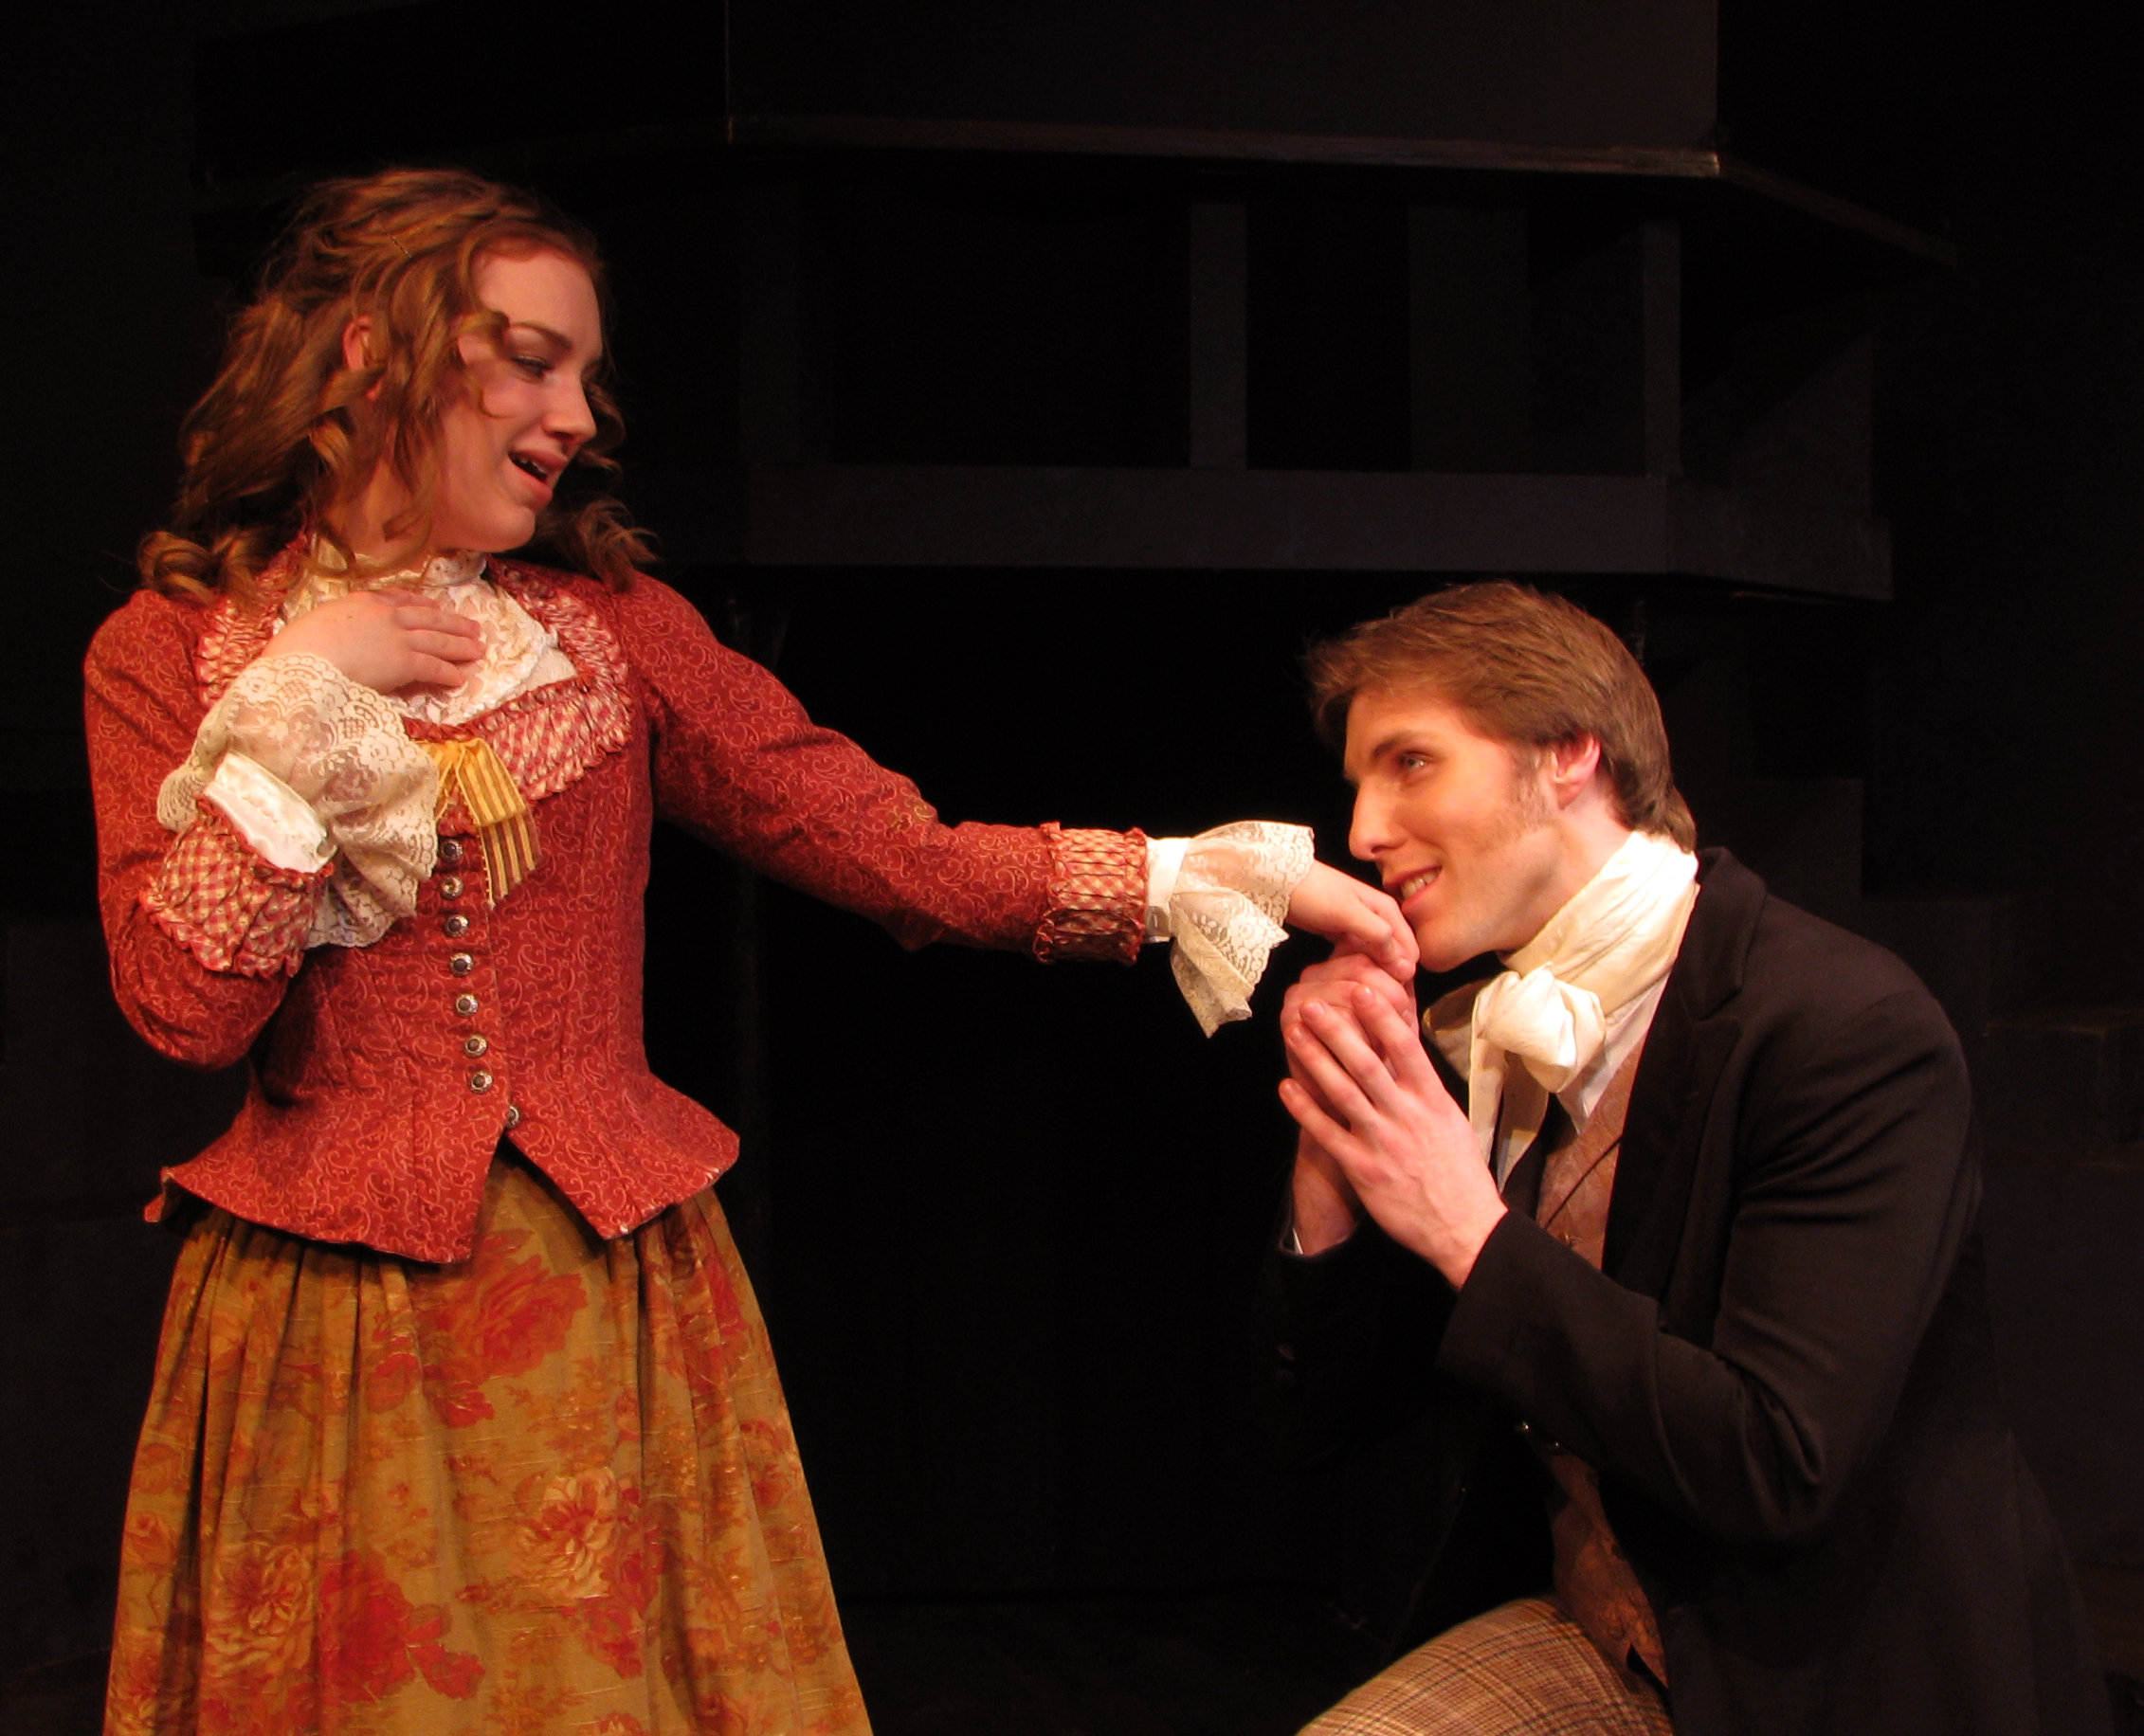 hermia and lysander relationship